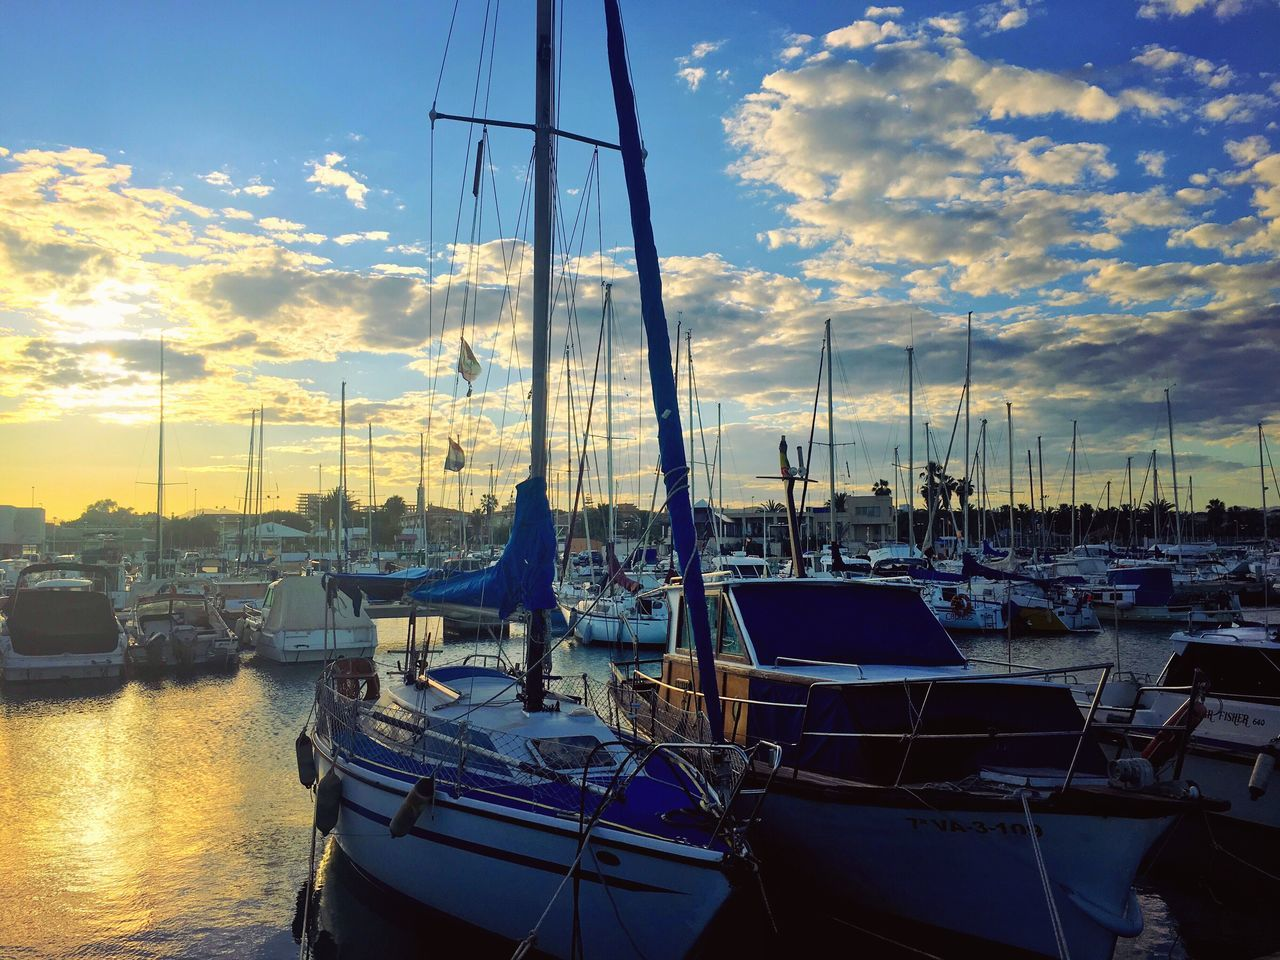 nautical vessel, moored, transportation, mode of transport, sky, boat, harbor, water, no people, cloud - sky, reflection, mast, marina, sunset, travel destinations, outdoors, sailboat, sea, waterfront, yacht, nature, day